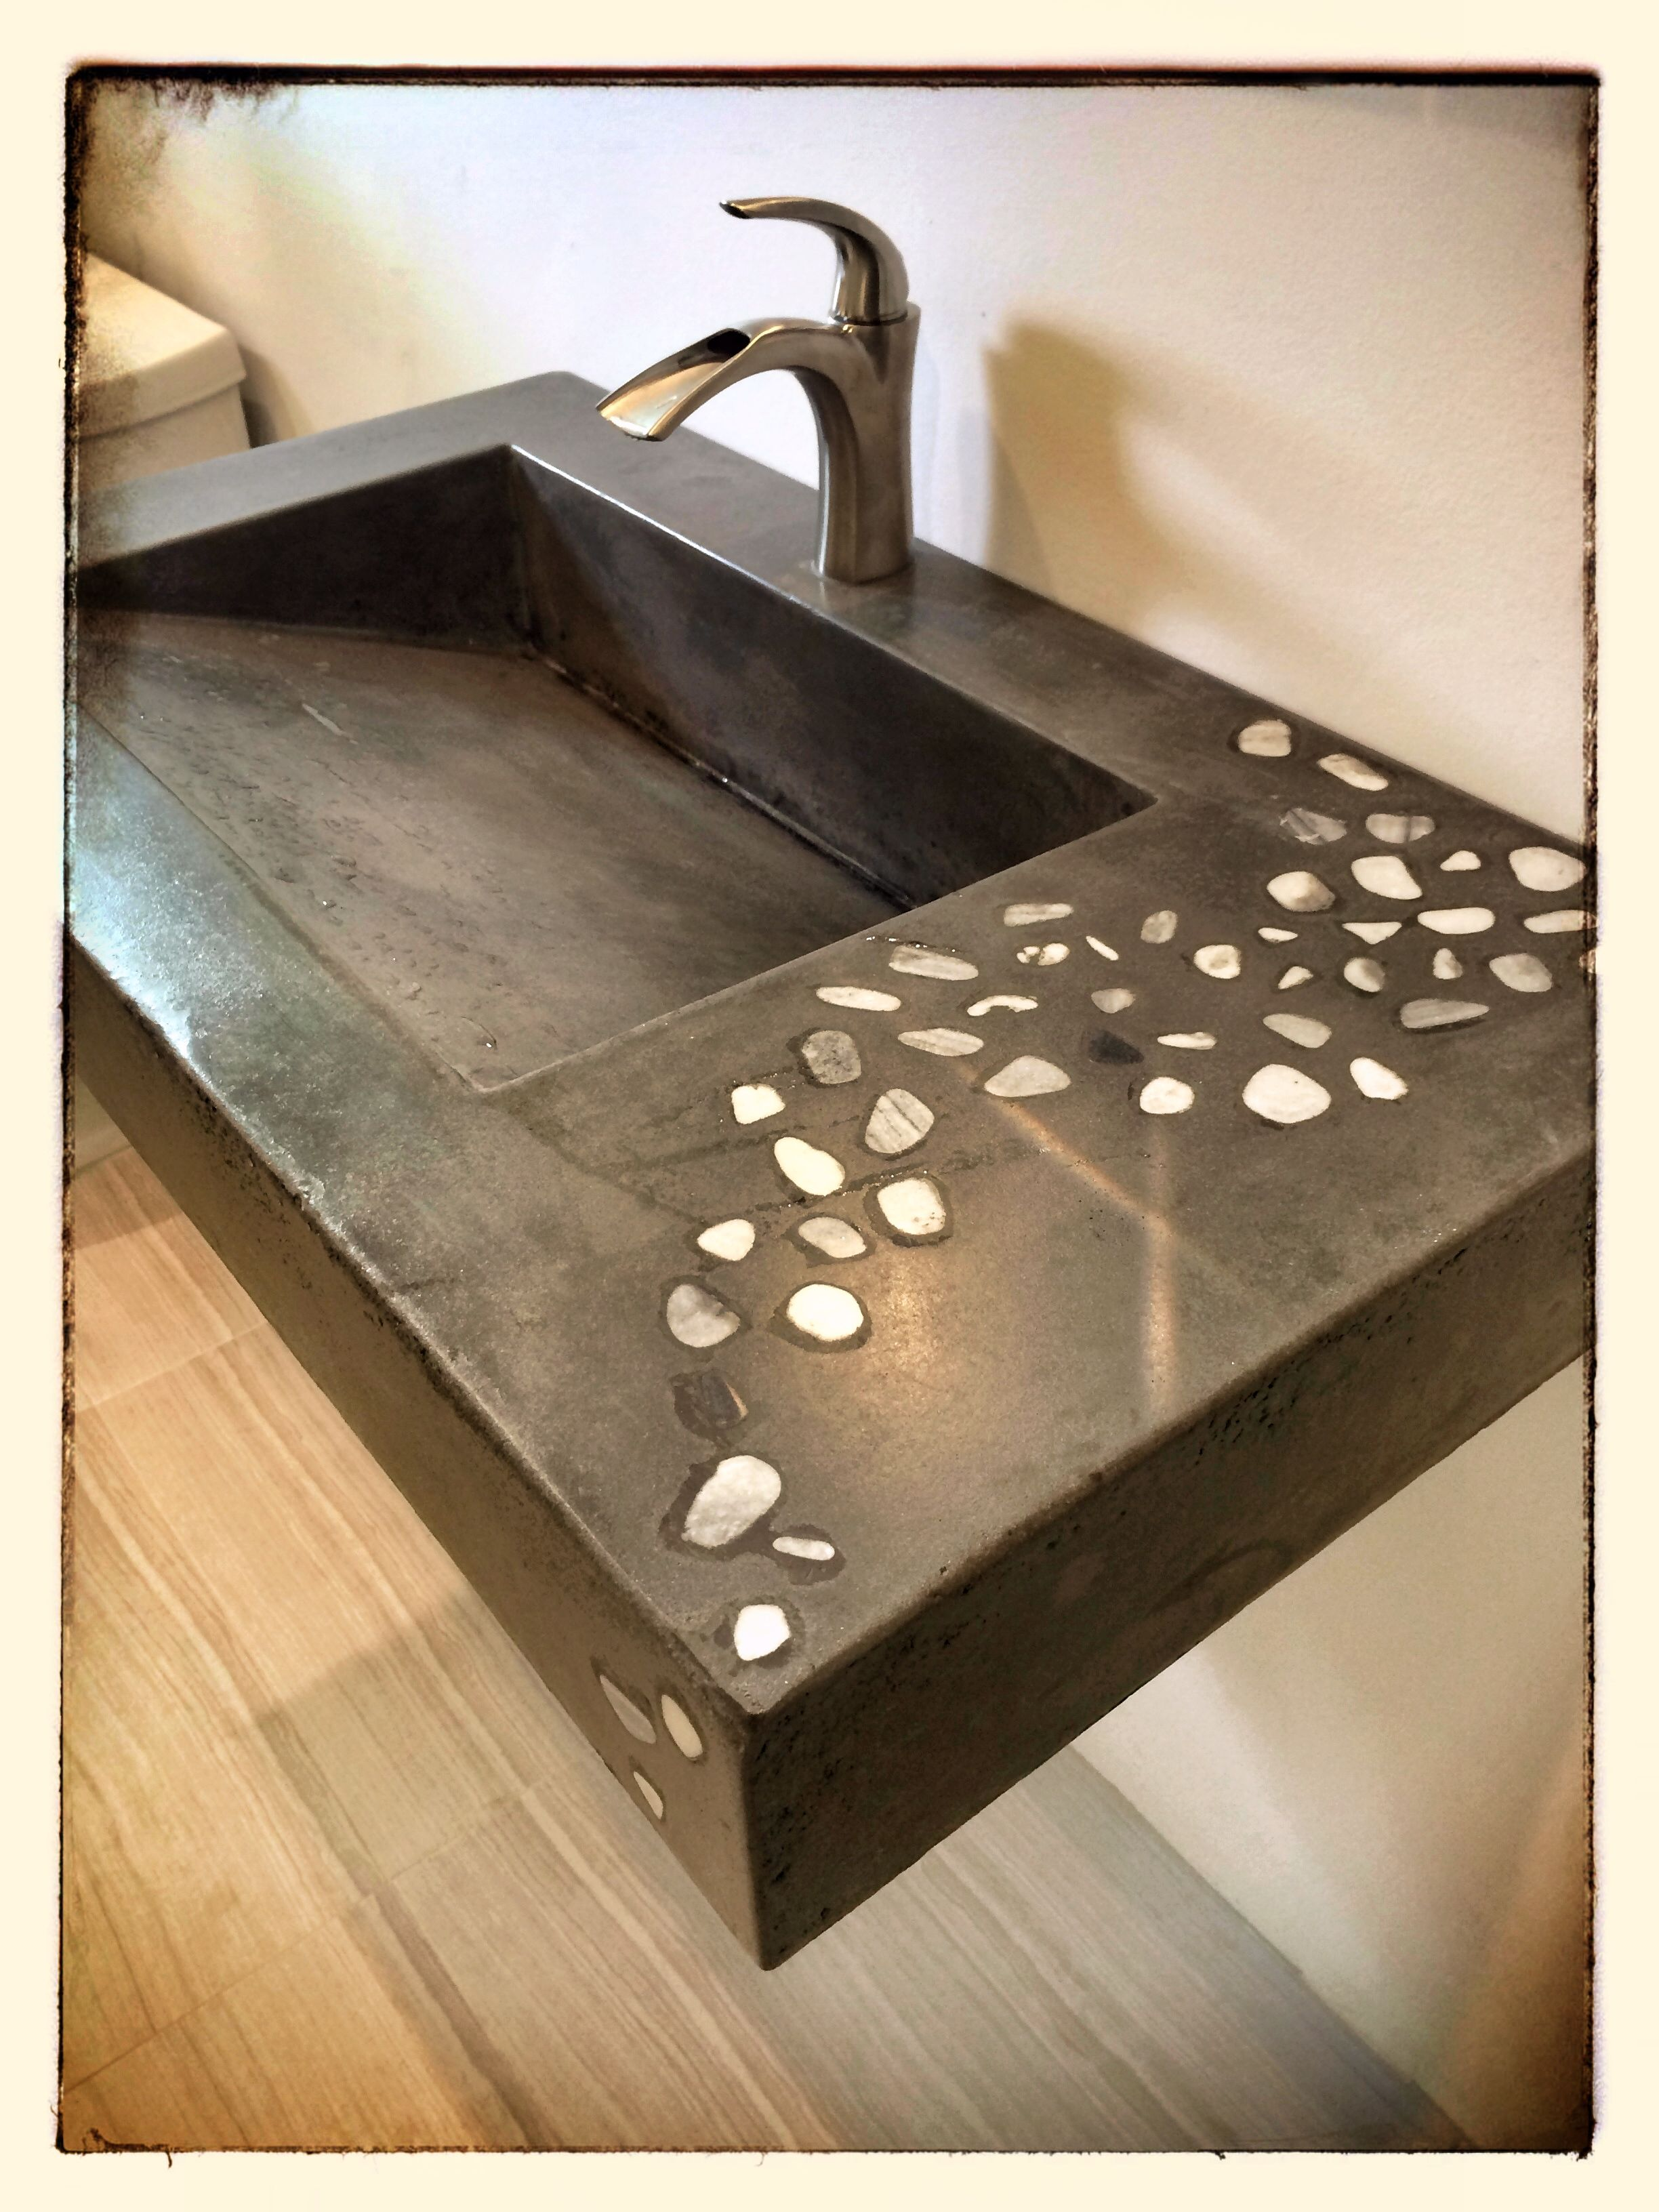 Keramik Waschbecken Wikipedia Concrete Ramp Sink W Stones Slot Drain Sji Bathroom